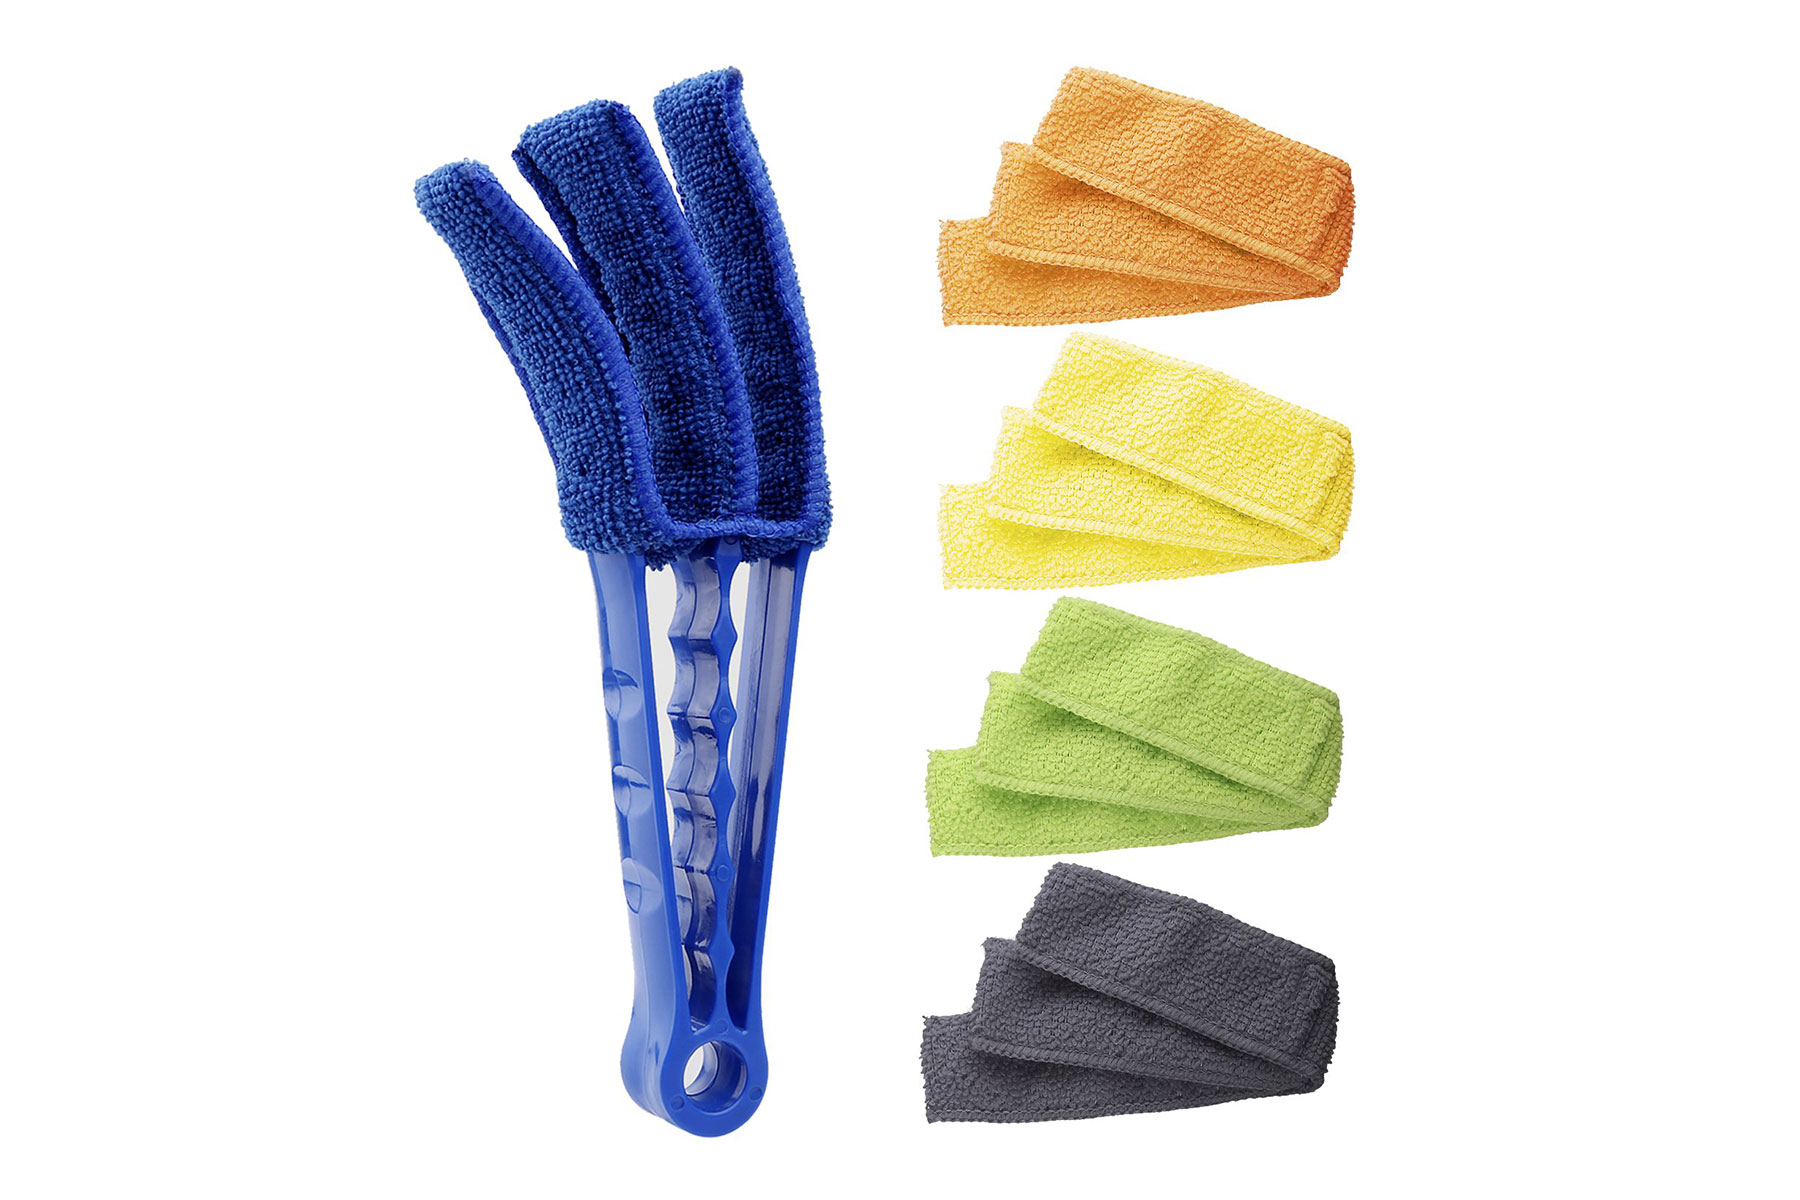 Hiware Window and Blind Duster Brush on sale for Amazon Prime Day 2019